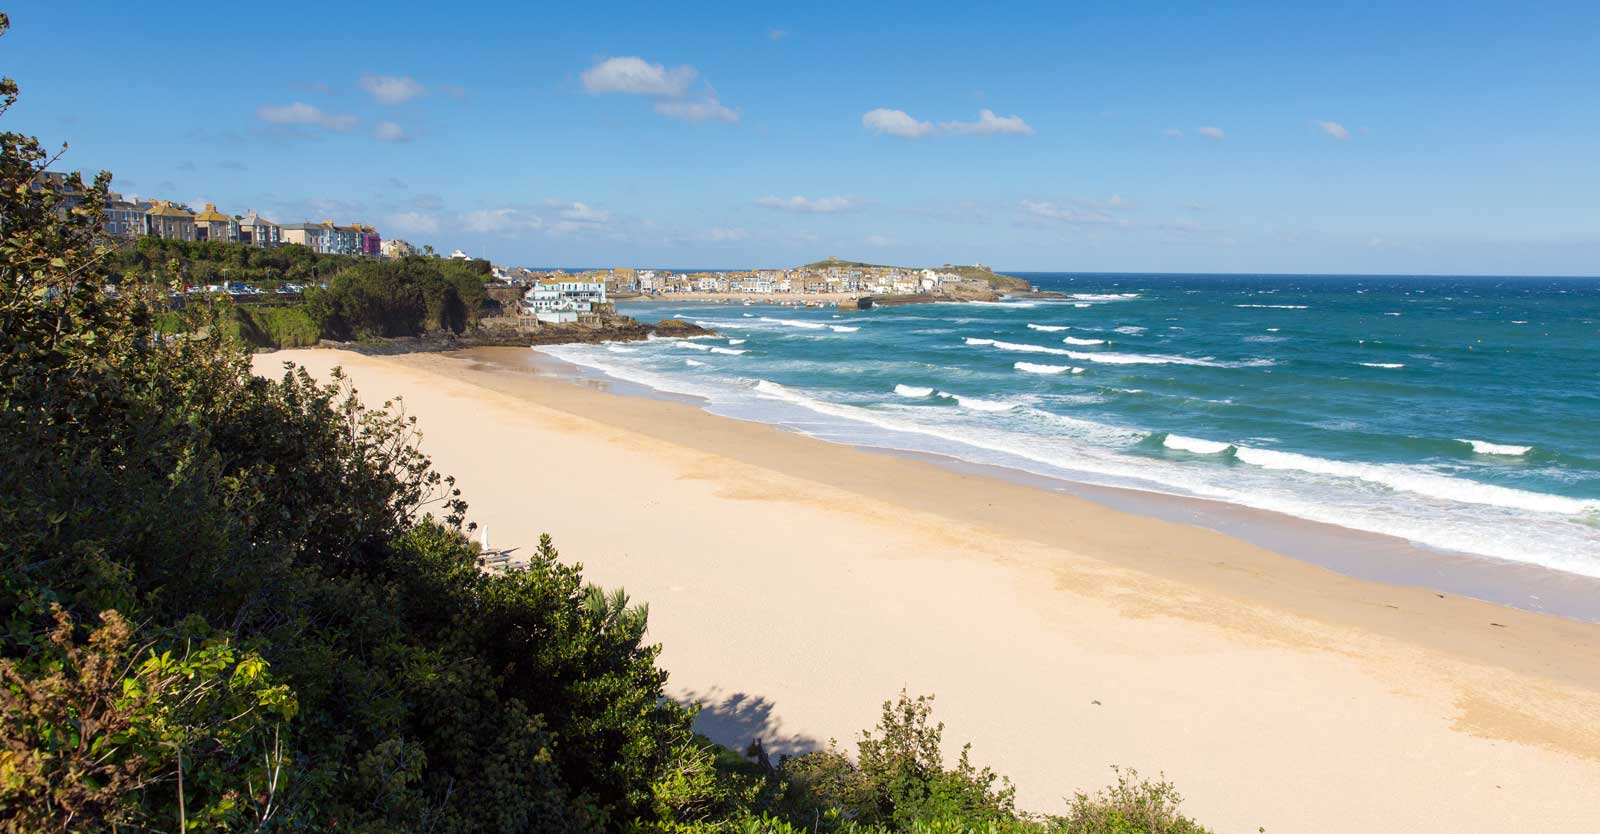 Porthminster Beach in St Ives, Cornwall.